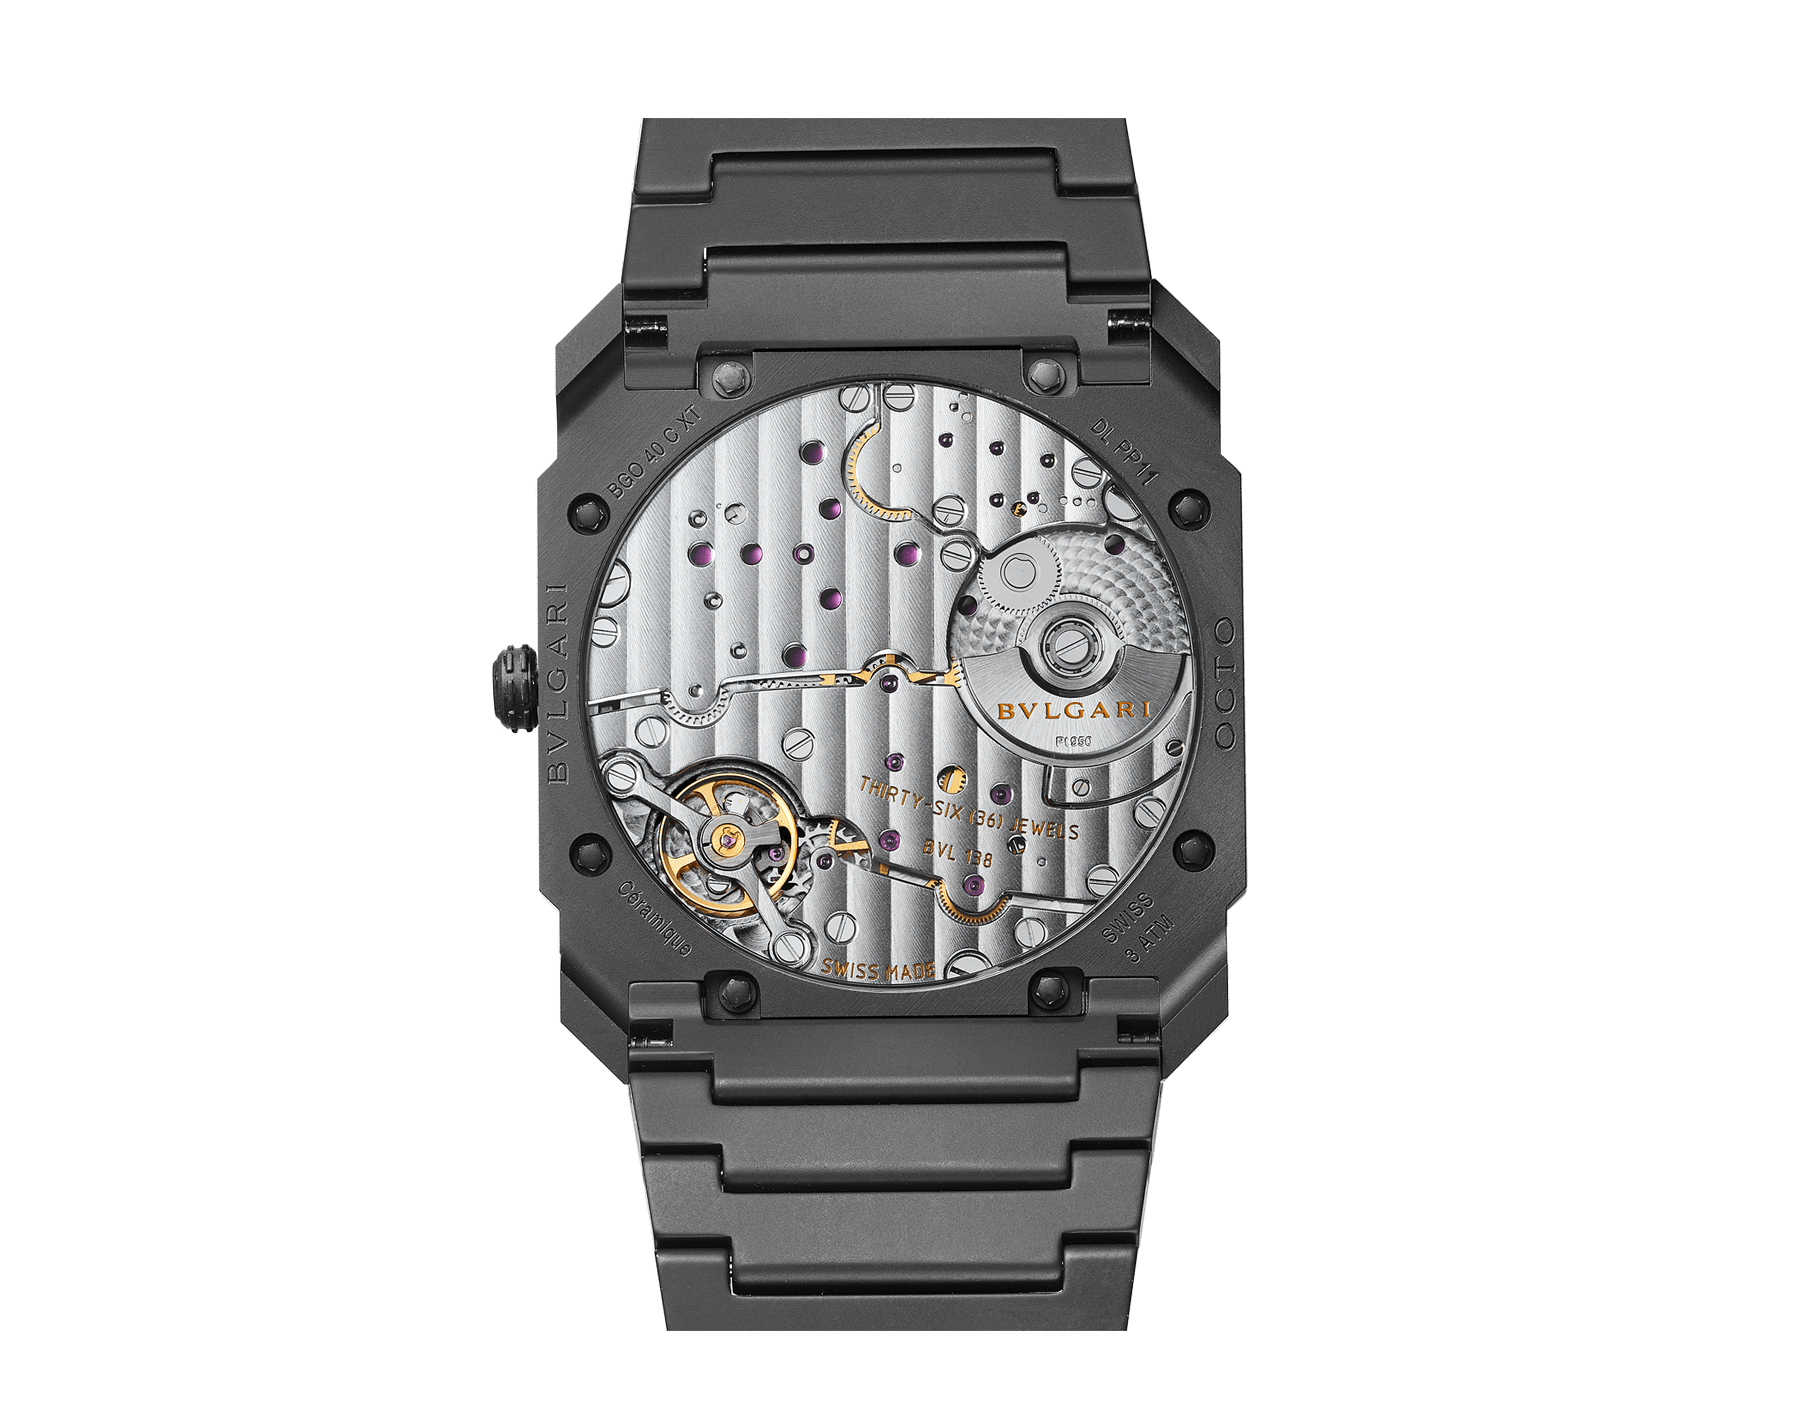 Octo Finissimo Automatic watch in black sandblasted ceramic with extra-thin mechanical manufacture movement, automatic winding with platinum micro rotor, small seconds and transparent case back. Water-resistant up to 30 meters 103077 image 3